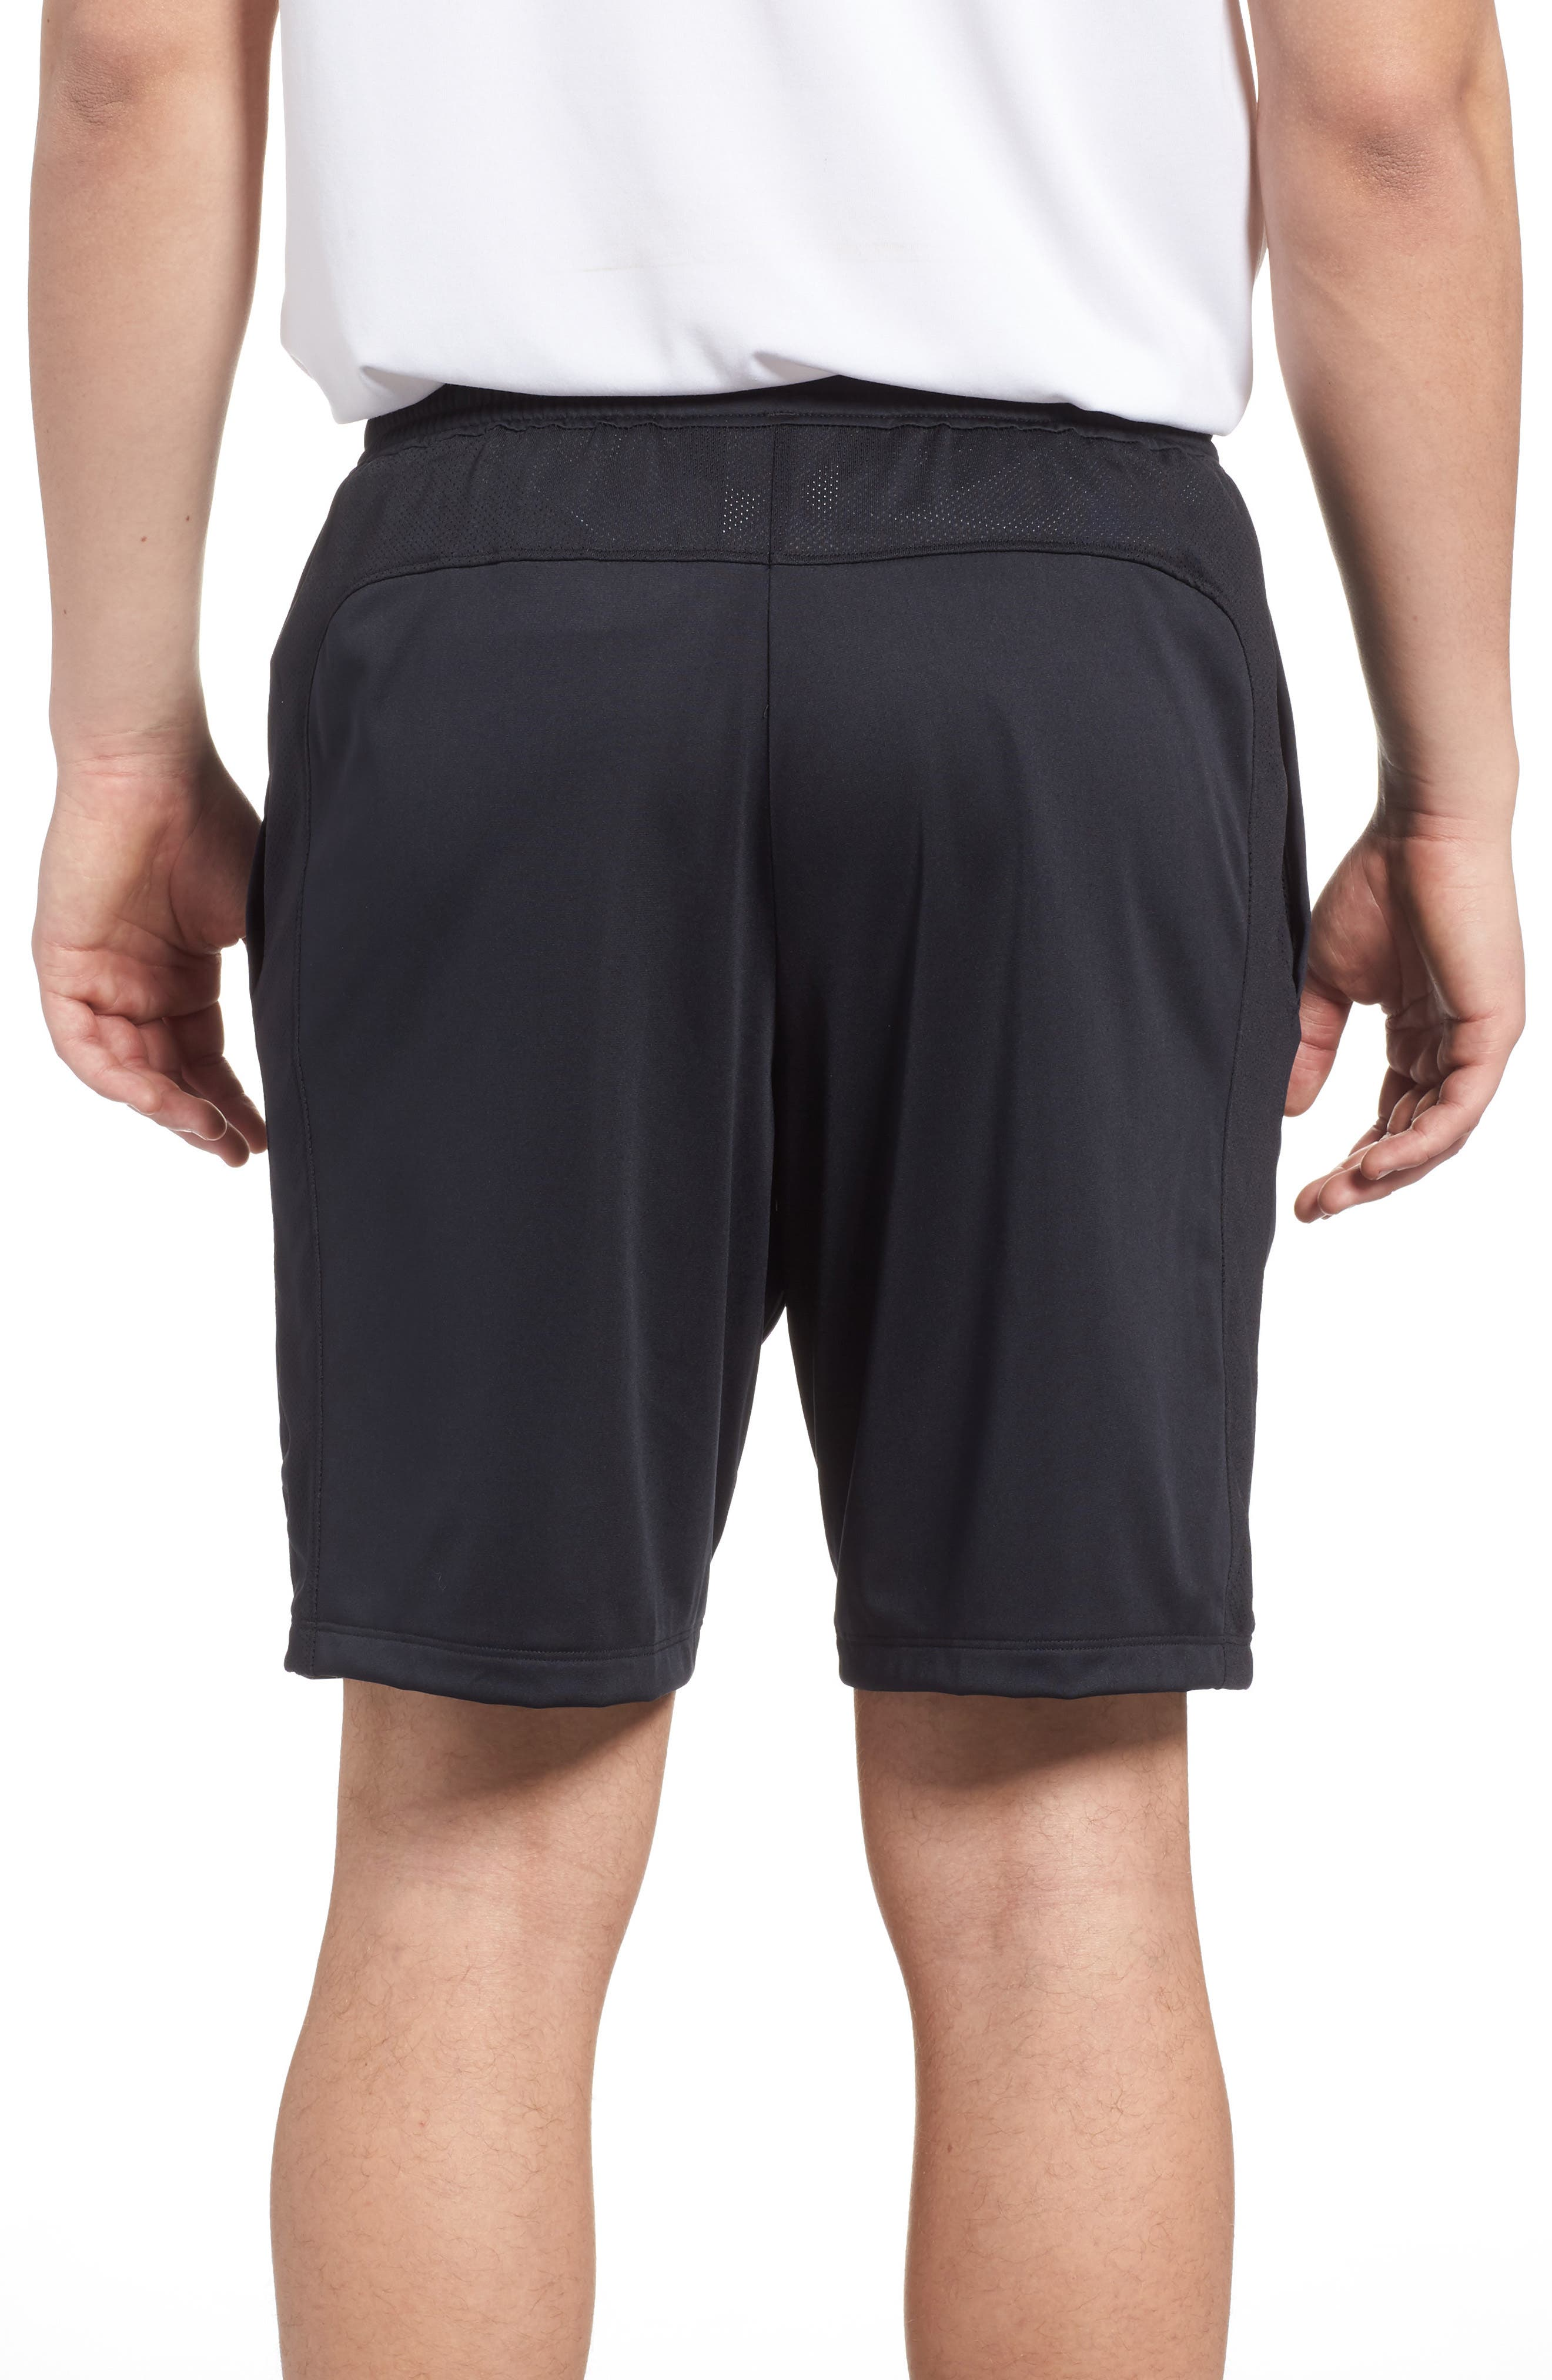 Raid 2.0 Classic Fit Shorts,                             Alternate thumbnail 2, color,                             BLACK